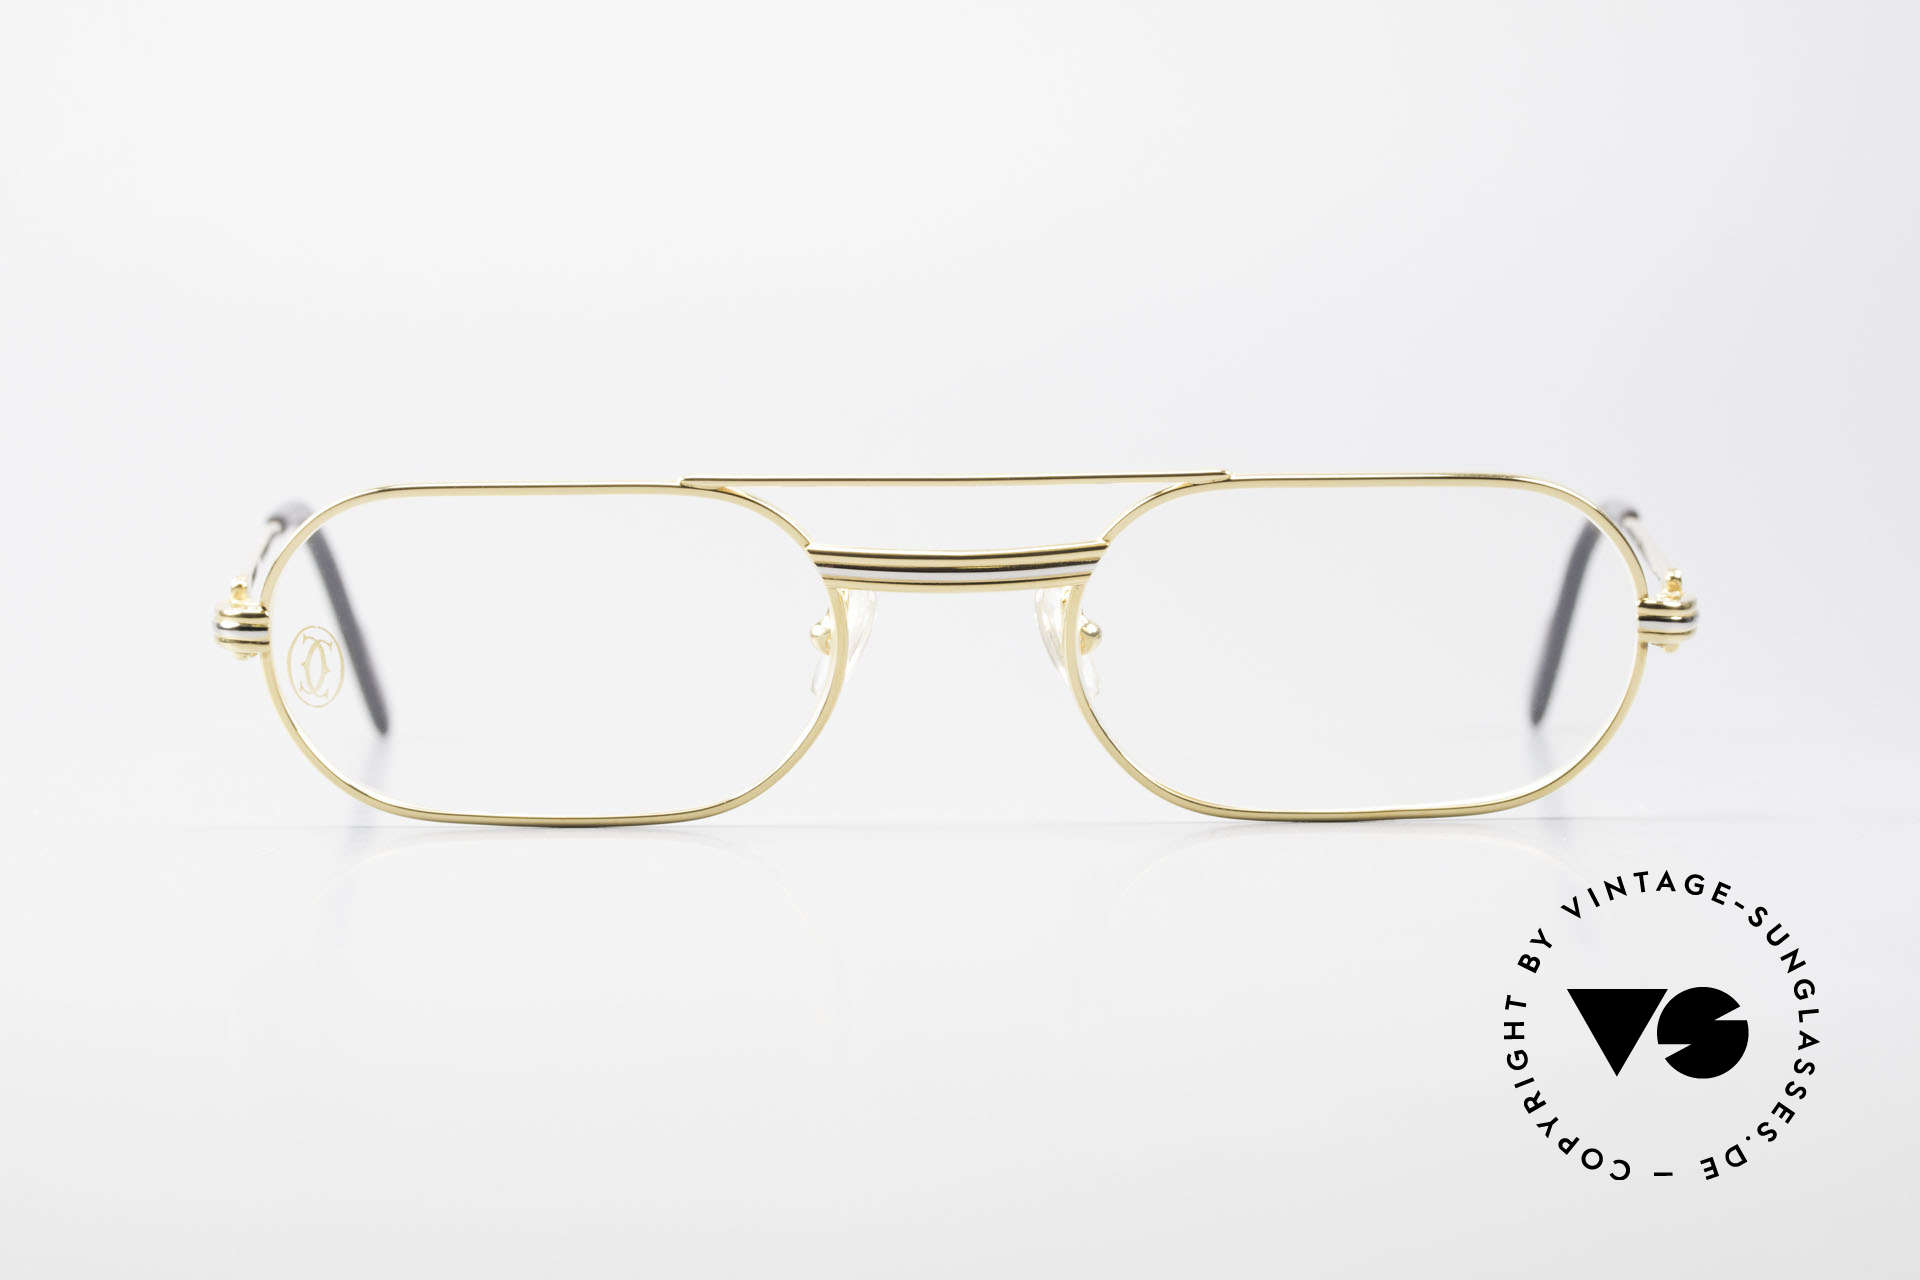 Cartier MUST LC Rose - S Limited Rosé Gold Eyeglasses, this pair with Louis Cartier decor, S size 53/20, 130, Made for Men and Women